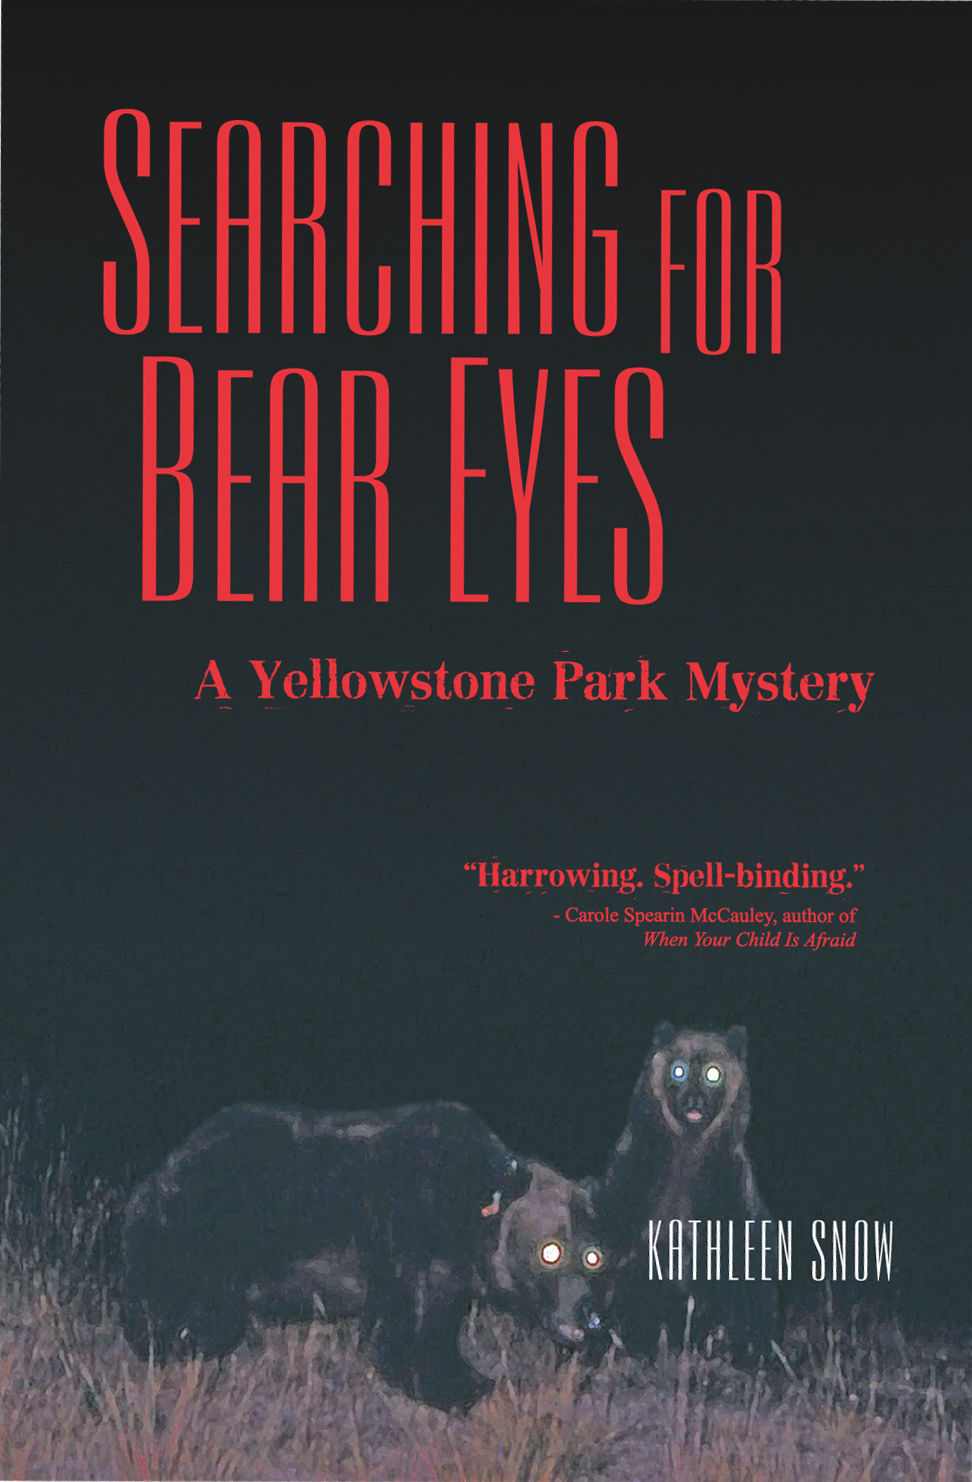 searching for bear eyes book cover